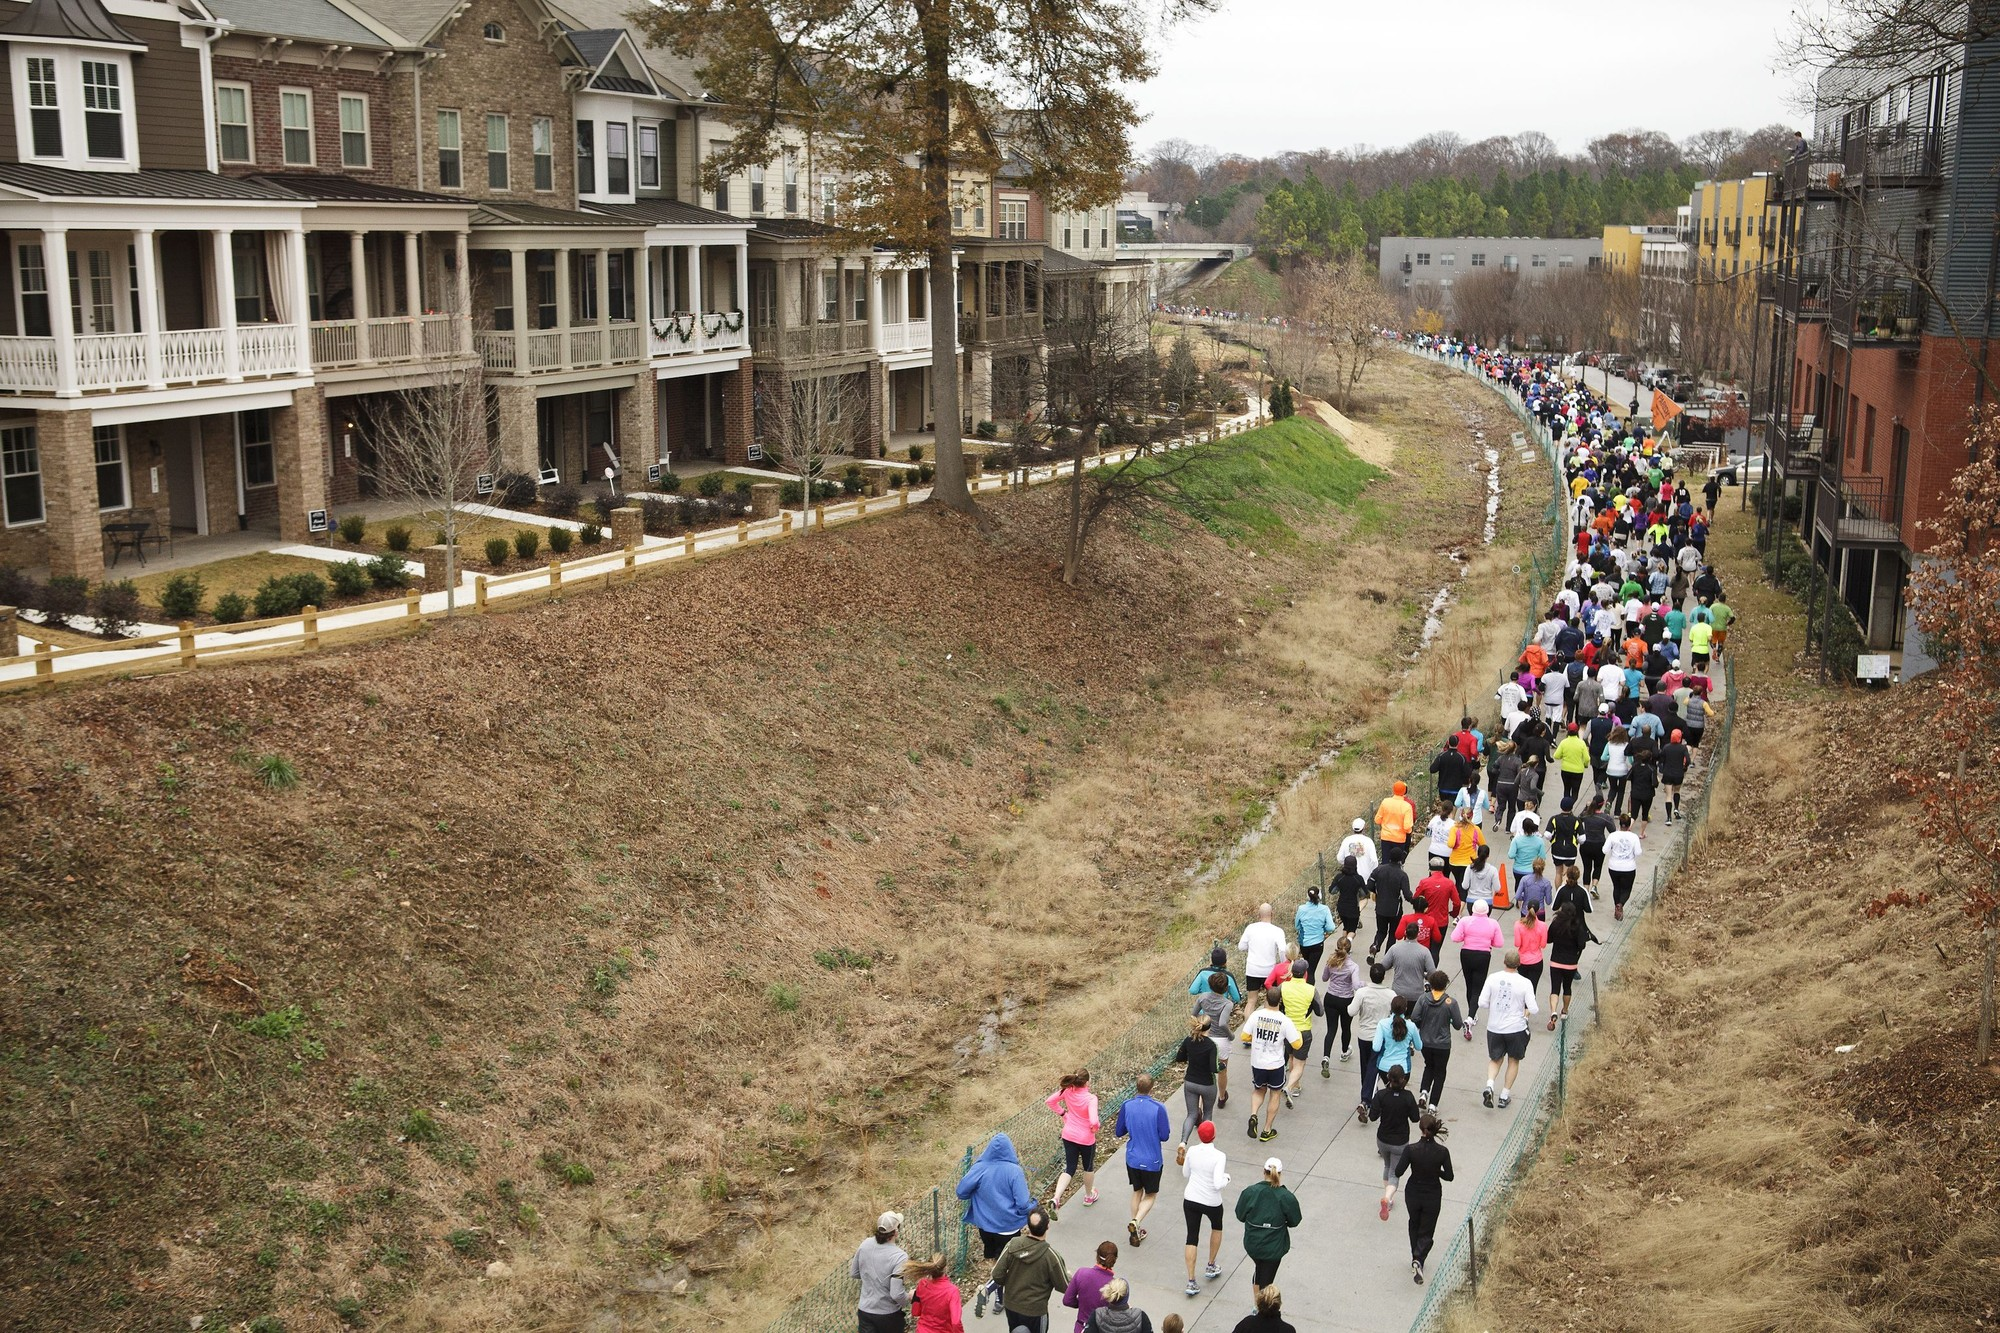 The Atlanta BeltLine: From Student Thesis to Community Mobilizer, A parade passes through the Eastside Trail of the Atlanta BeltLine, completed in October 2012. Image © Christopher T. Martin